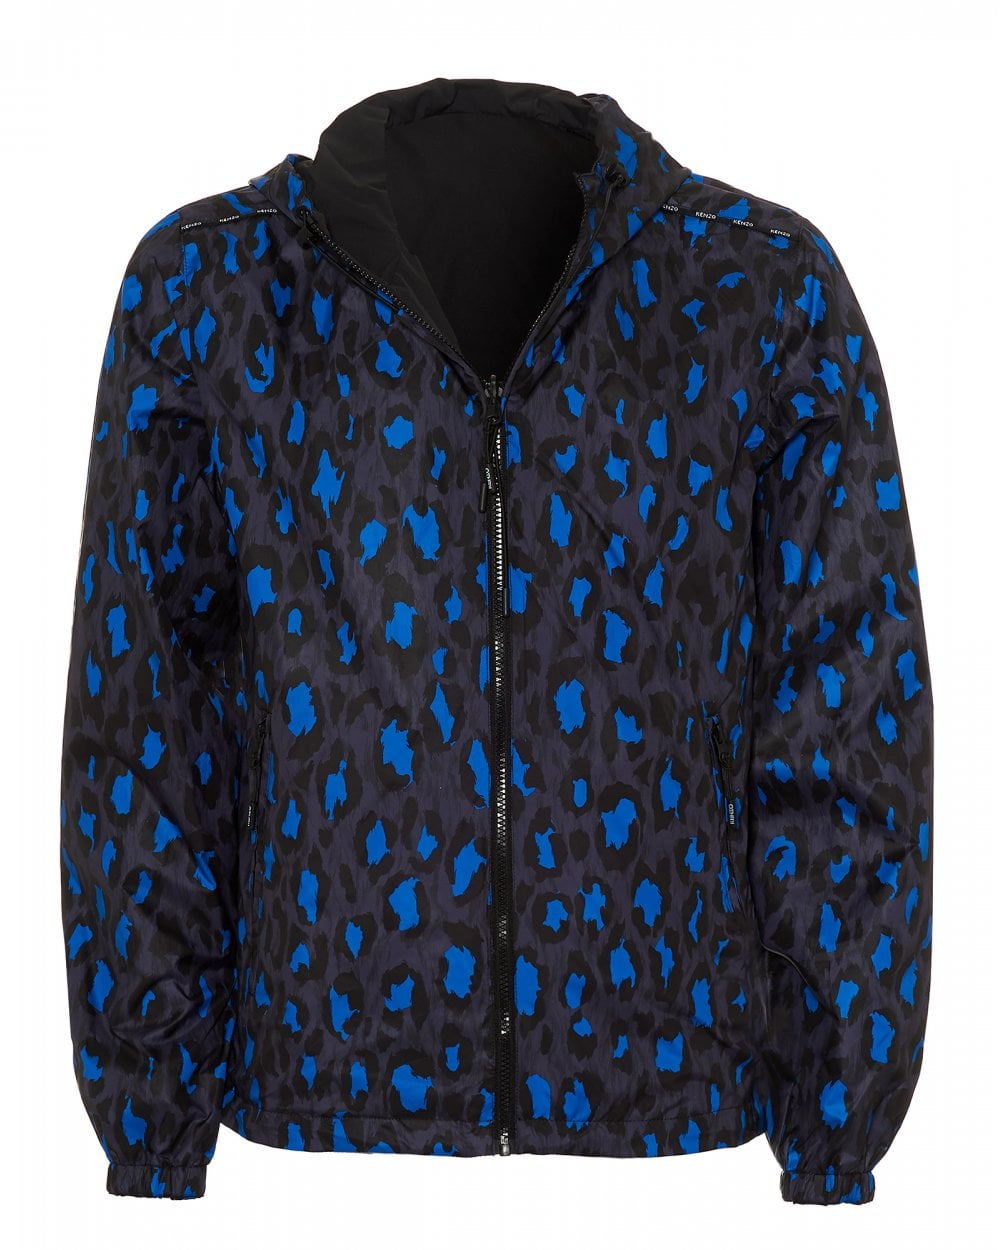 0efc3ef3 Mens Reversible Windbreaker Jacket, Black Blue Coat